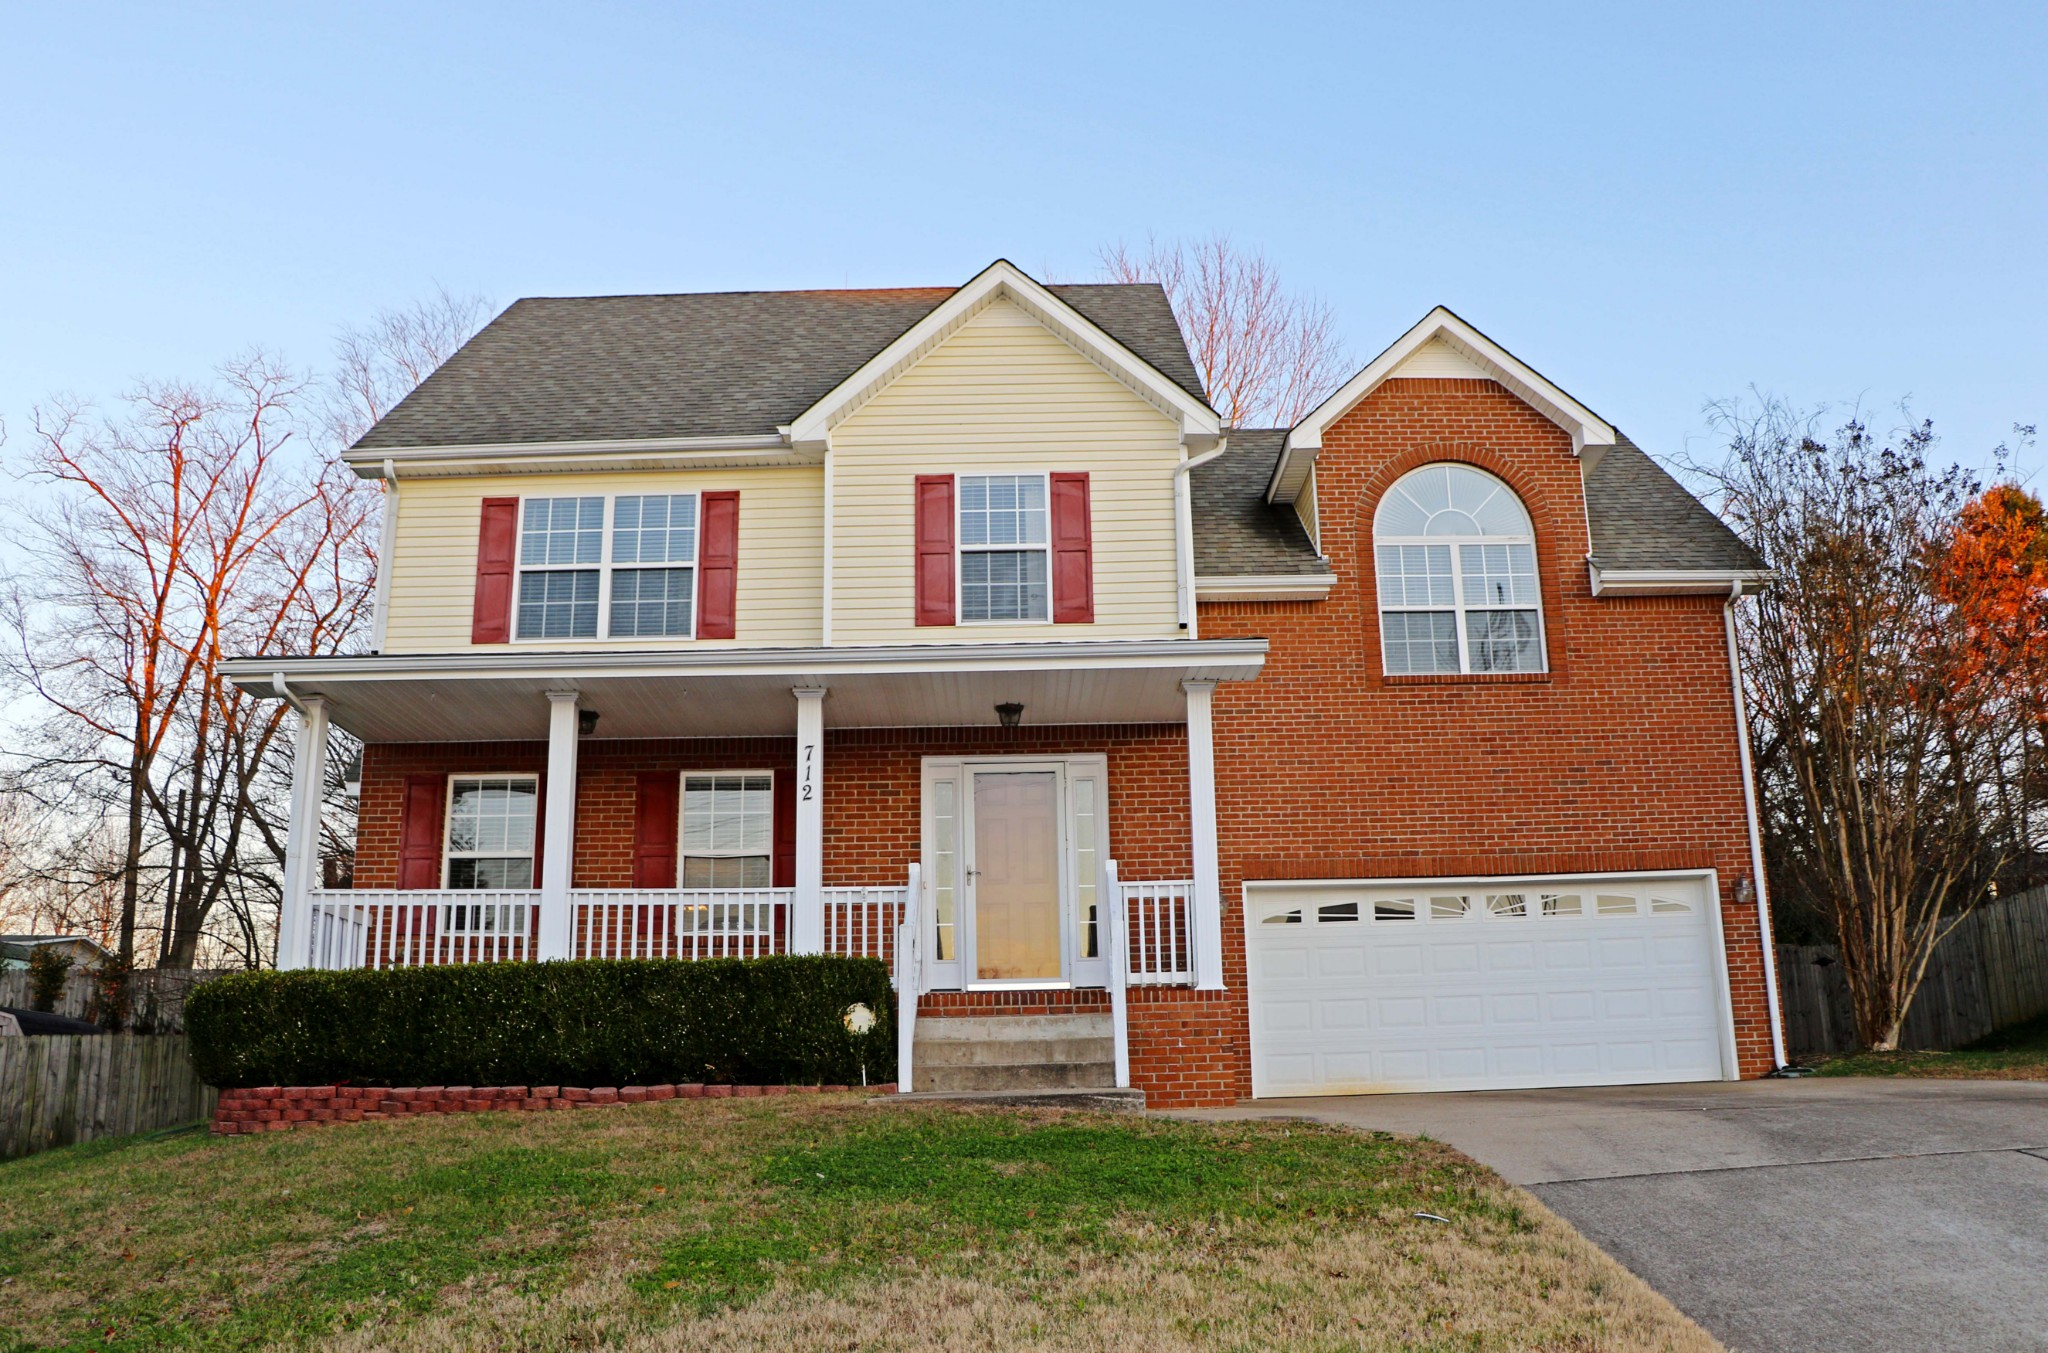 712 Winding Bluff Way Property Photo - Clarksville, TN real estate listing